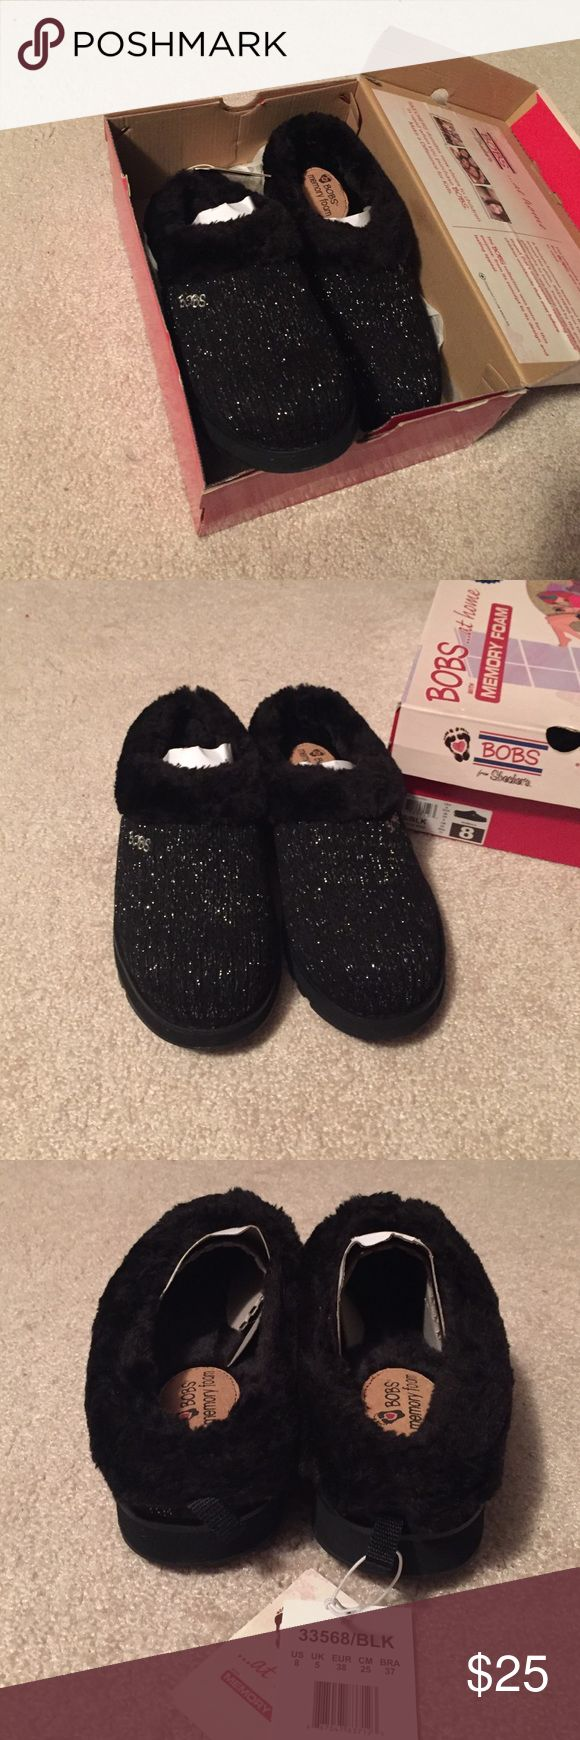 New! Bobs slippers Brand new Bobs for Skechers slippers with memory foam. Size 8. Skechers Shoes Slippers